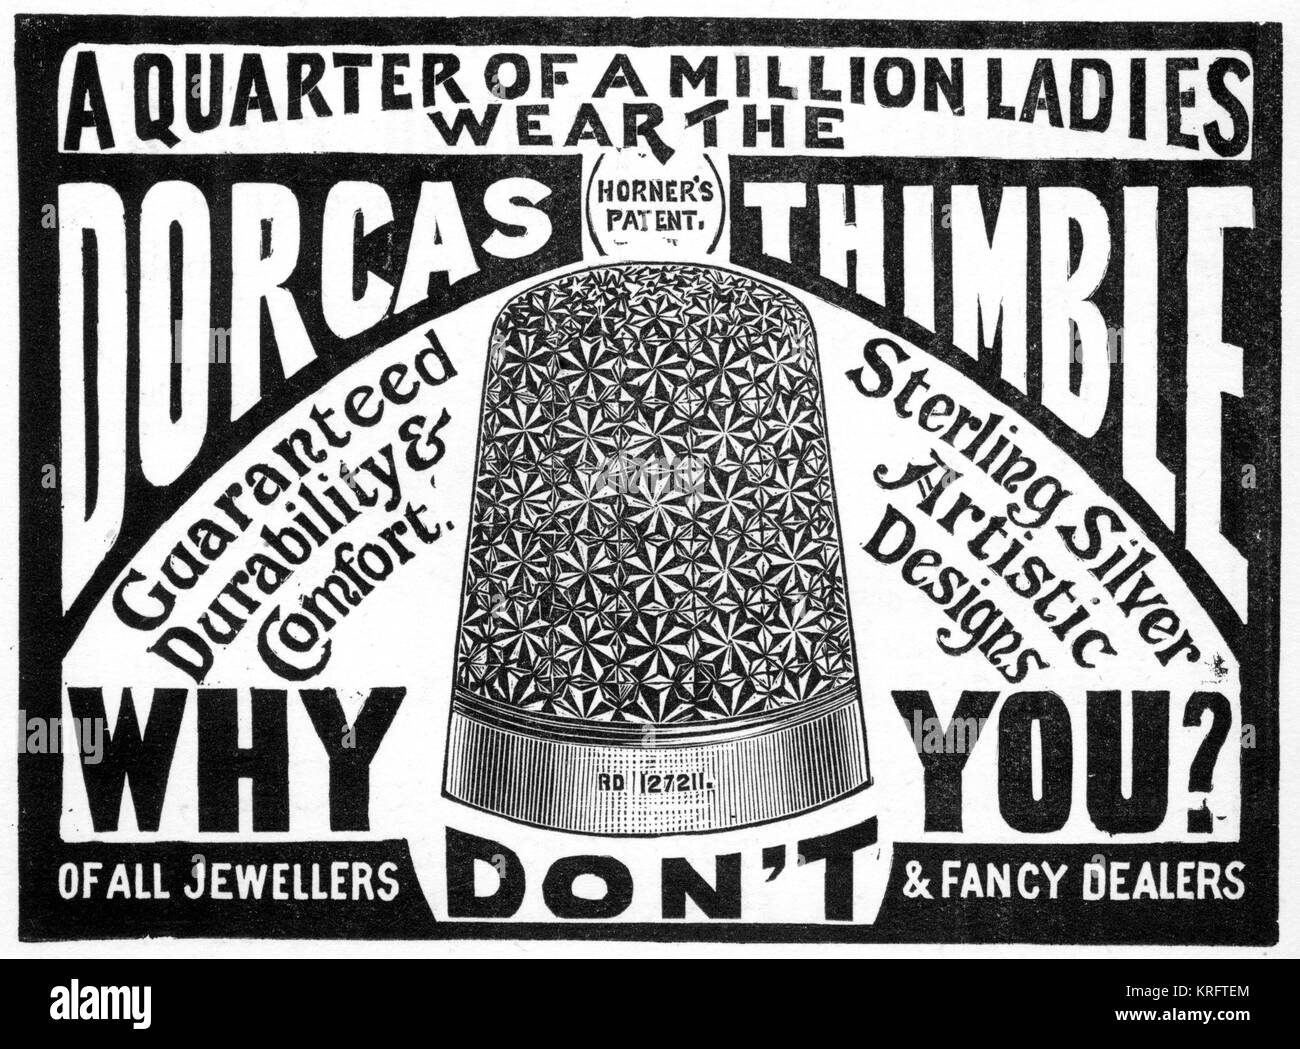 Advertisement for Charles Horner's patent Dorcas thimble, as worn by a quarter of a million ladies. This thimble - Stock Image